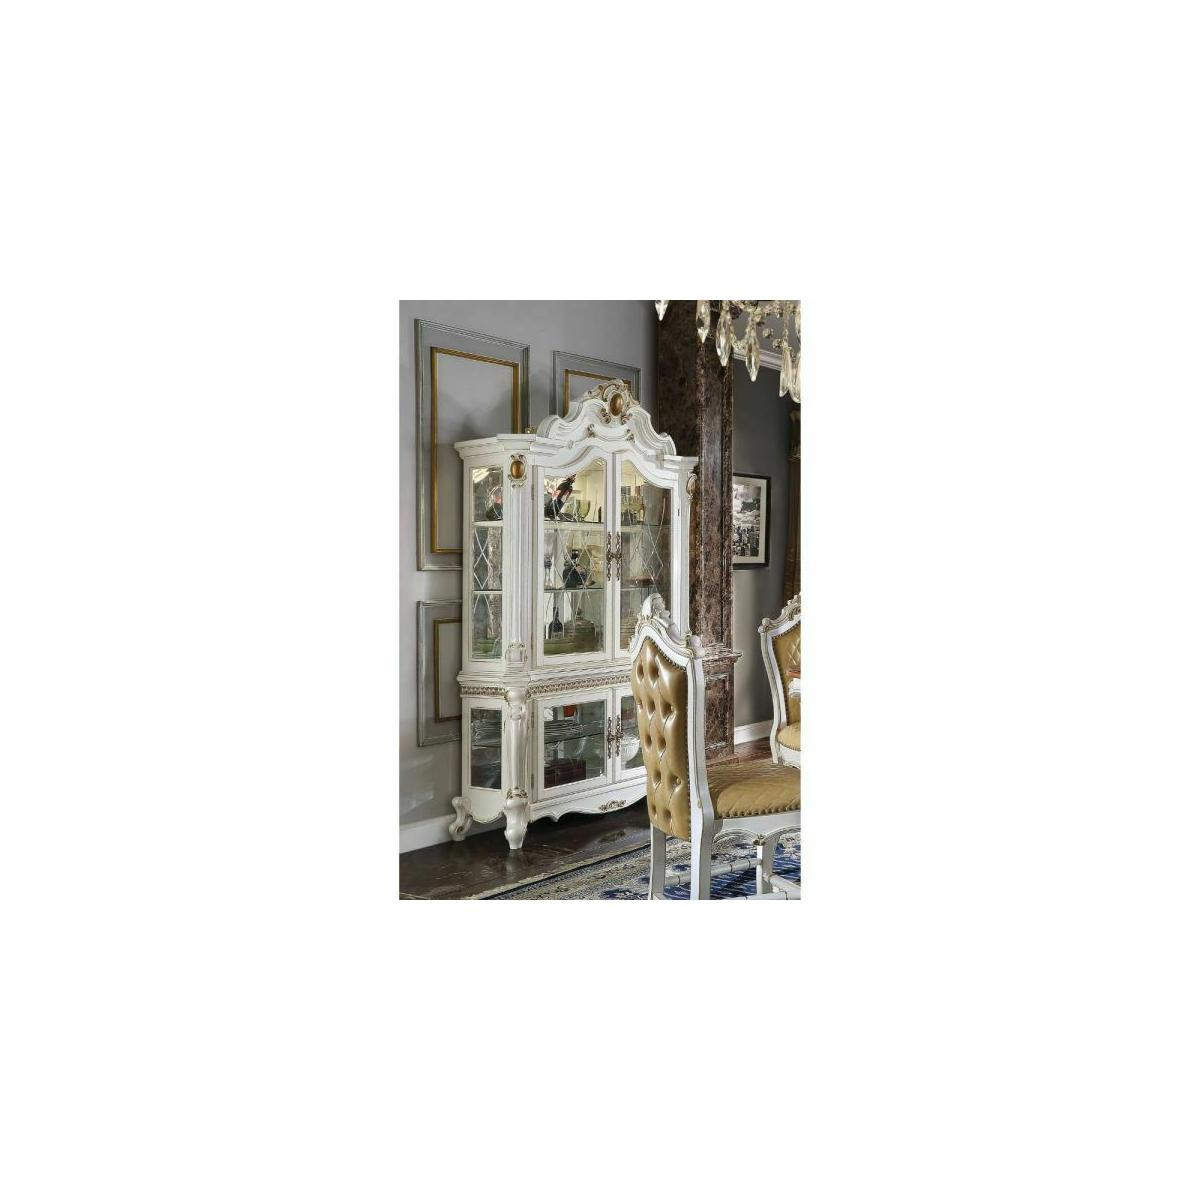 ACME Picardy Curio Cabinet - 78213 - Traditional, Vintage - Wood (Rbw), Wood Veneer (Cherry), Poly-Resin (Fiberglass), Glass, Mirror - Antique Pearl